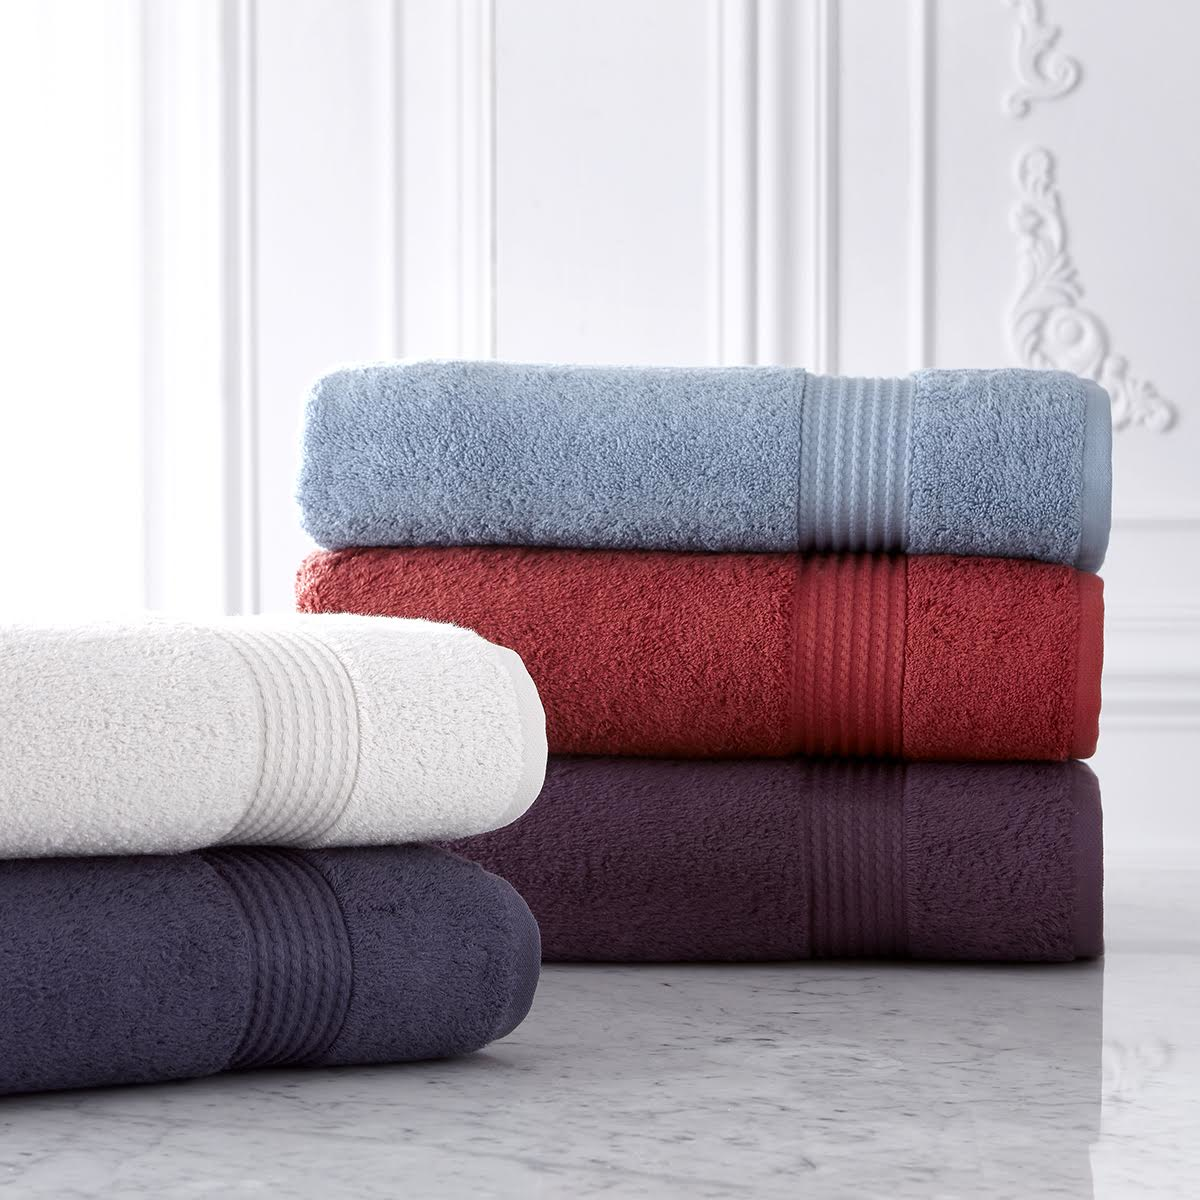 Towel Stack 2.png